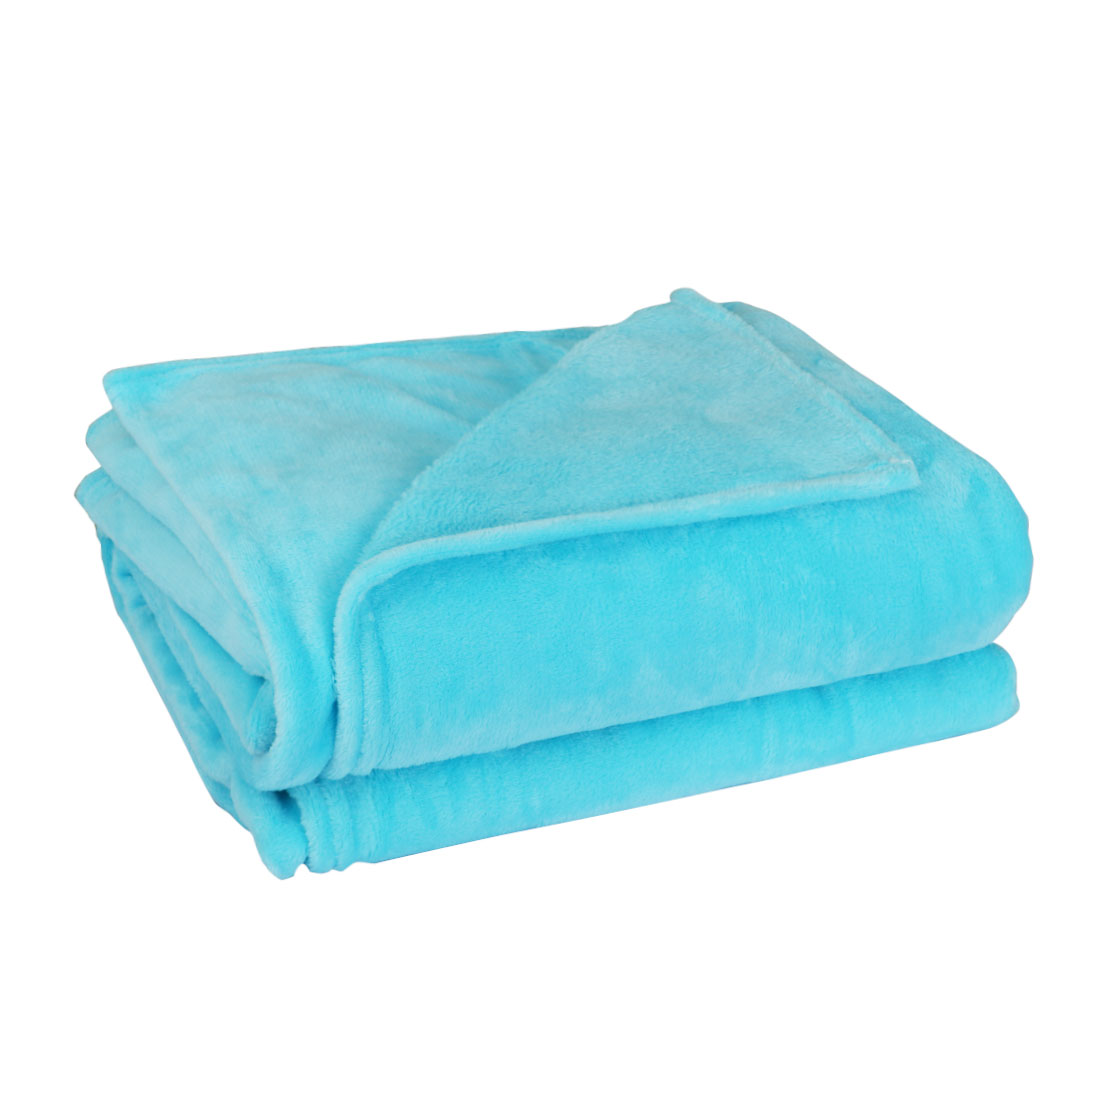 230 x 250cm Home Bedroom Warm Throw Blanket Rug Plush Fleece Bed Quilt Sofa Soft Pure Blue